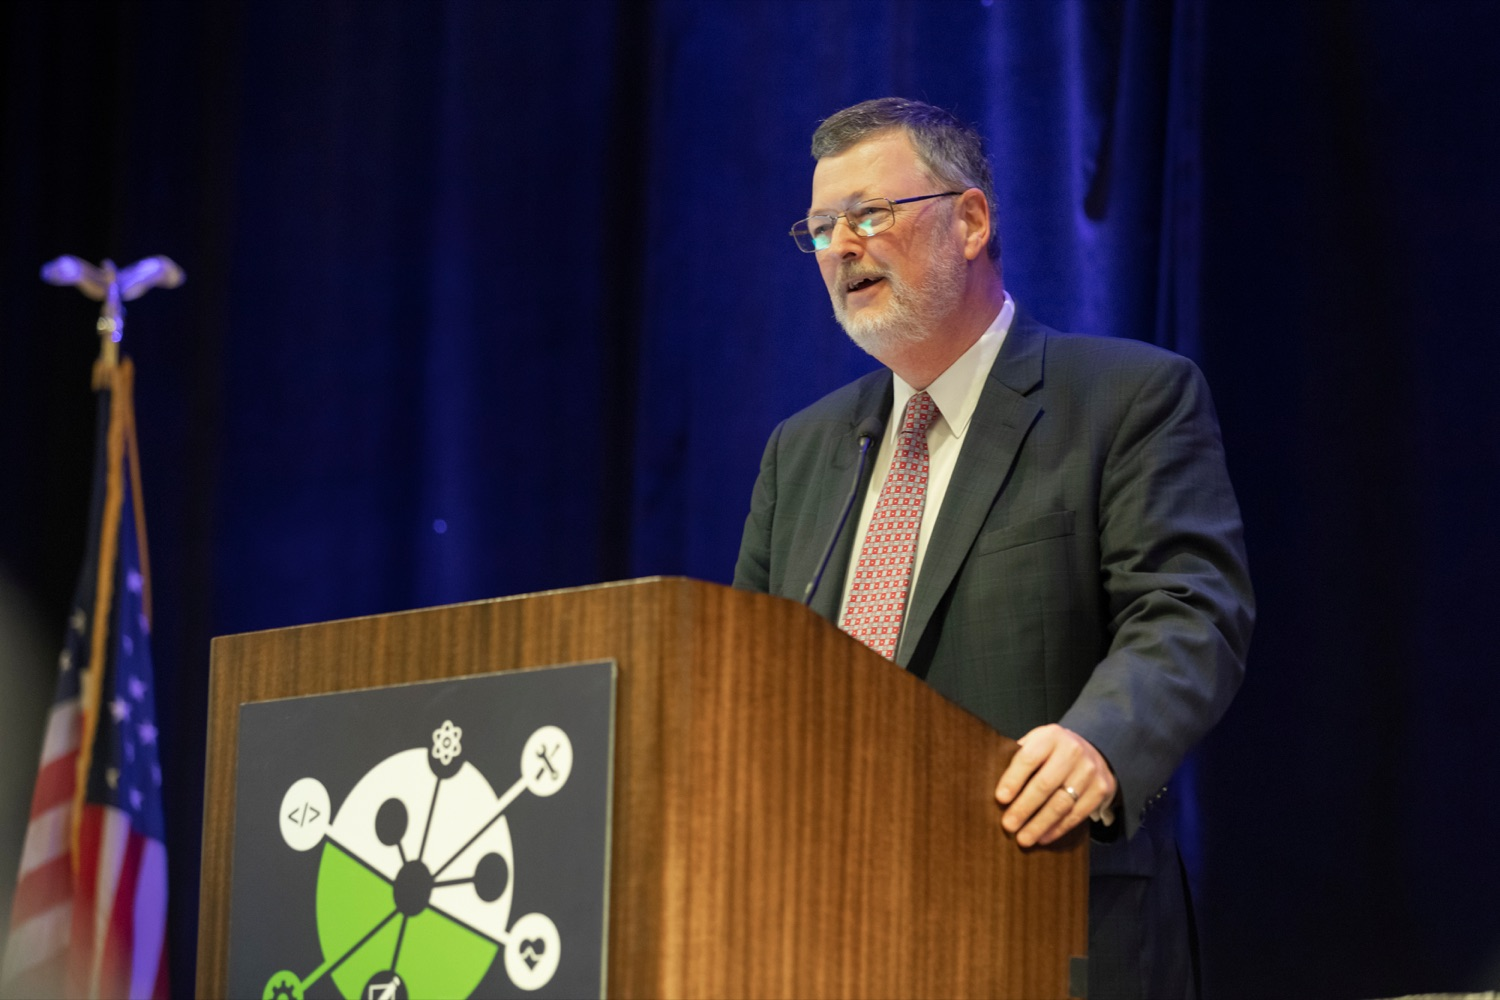 "<a href=""http://filesource.abacast.com/commonwealthofpa/photo/17520_LandI_Apprenticeships_NK_006.JPG"" target=""_blank"">⇣ Download Photo<br></a>Jerry Oleksiak, secretary of Pennsylvania's department of Labor and Industry, speaks during the 2019 Pennsylvania Apprenticeship Summit at Hershey Lodge on Thursday, October 31, 2019."